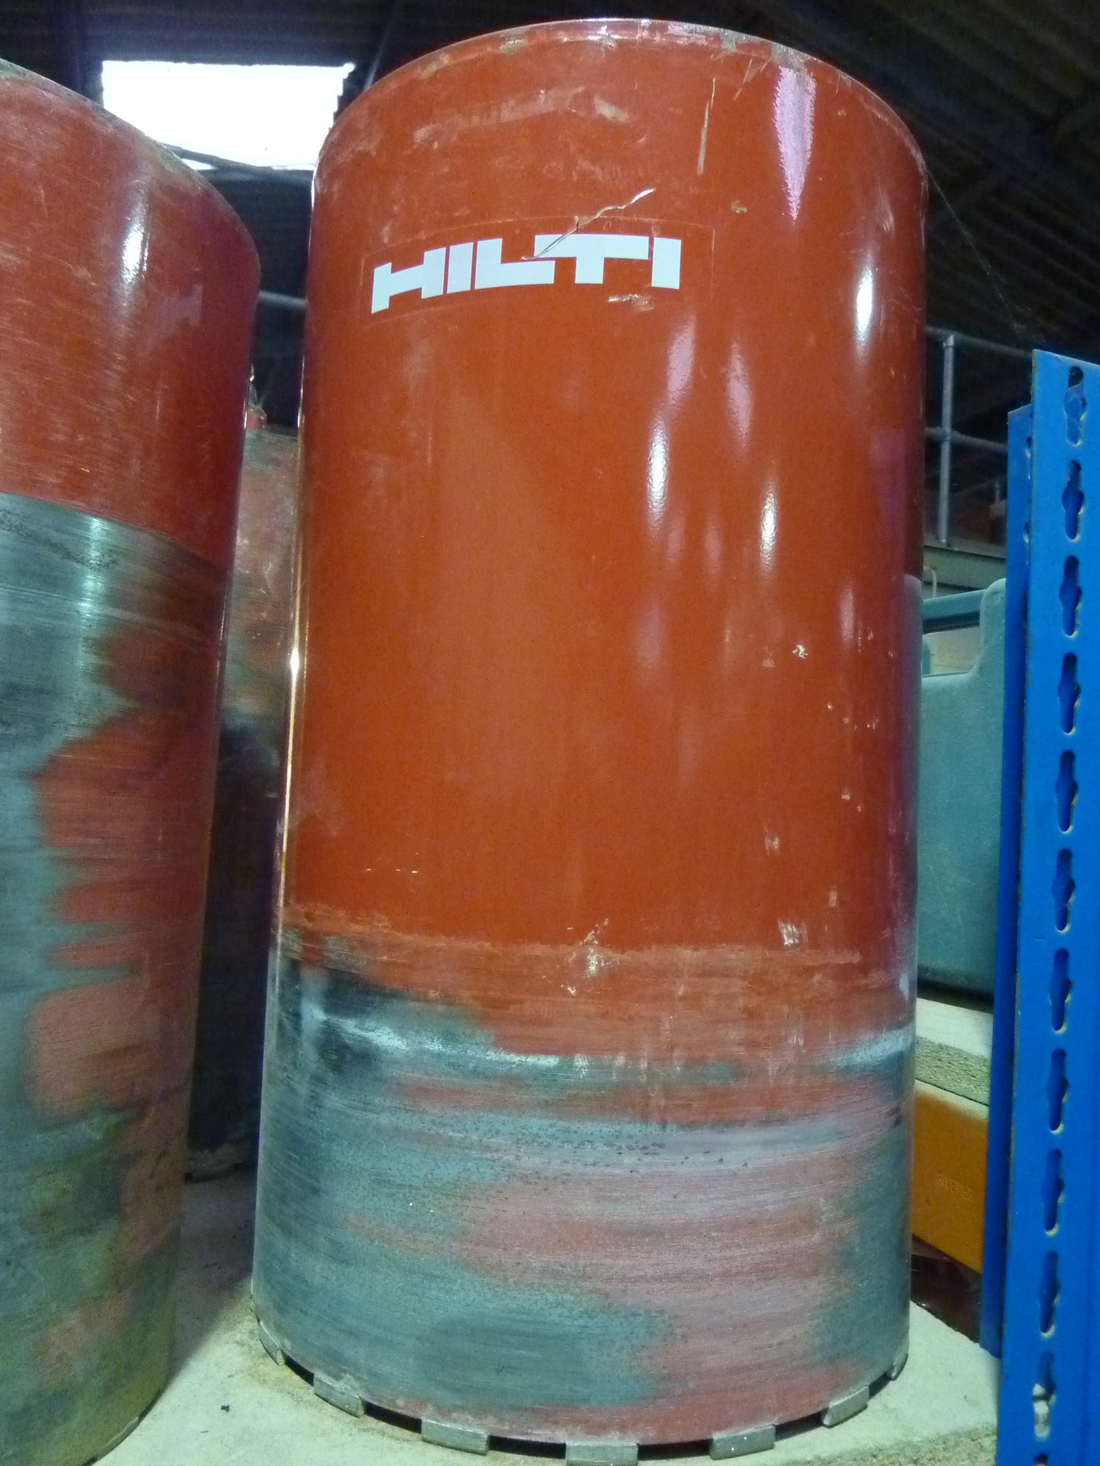 Hilti DD130 Wet Diamond Core 77mm